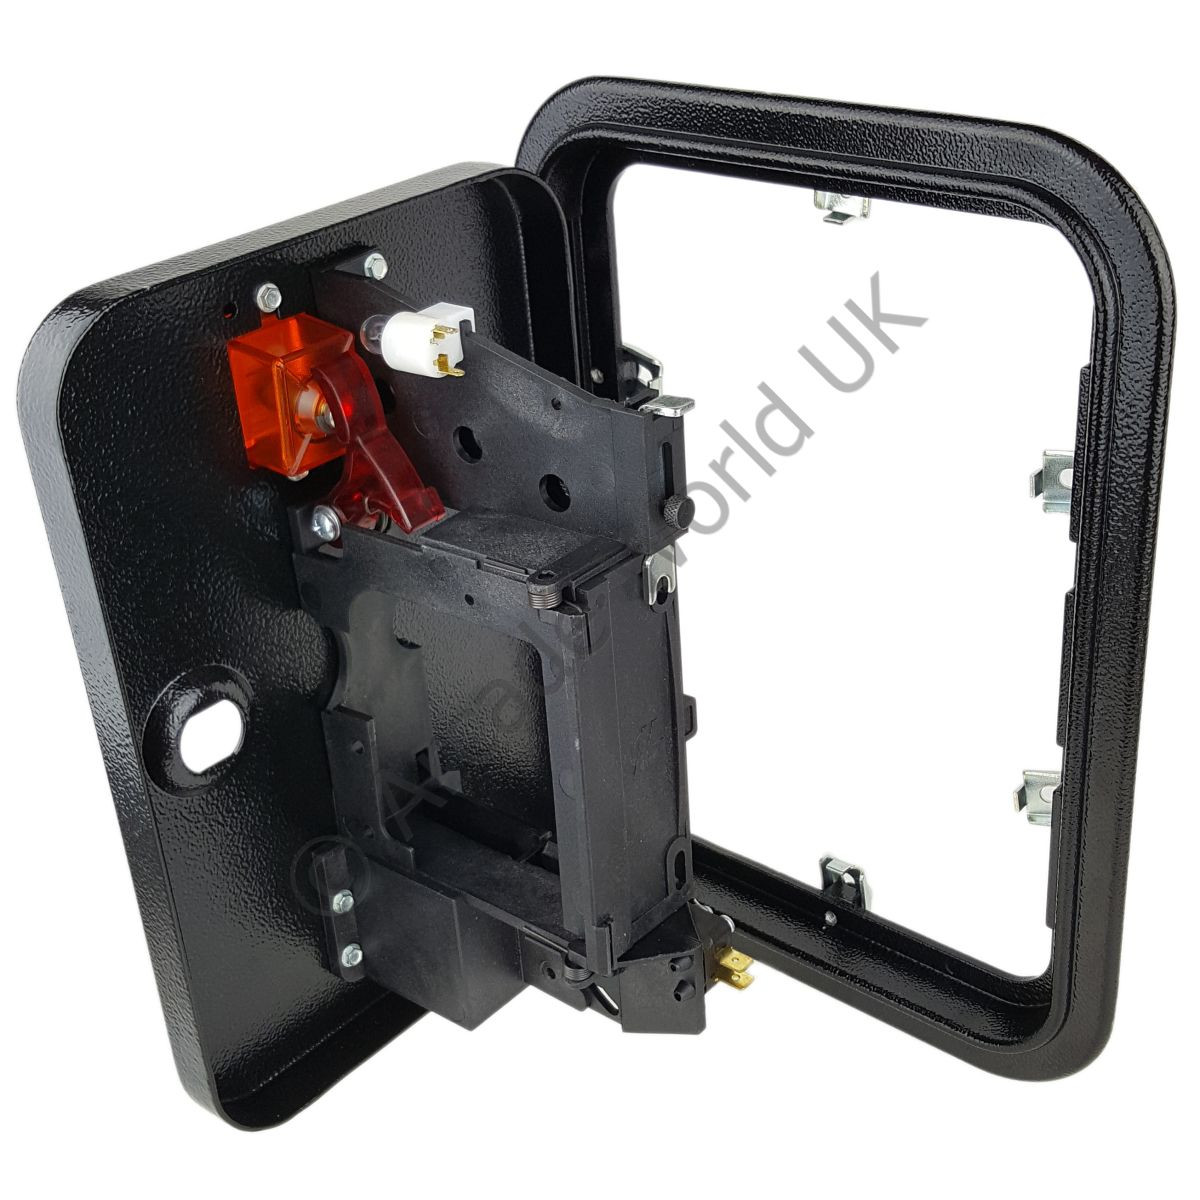 1 x High Quality IL Mini Coin Door with Cradle for Arcade Machine Projects  sc 1 st  eBay & 1 x High Quality IL Mini Coin Door with Cradle for Arcade Machine ...